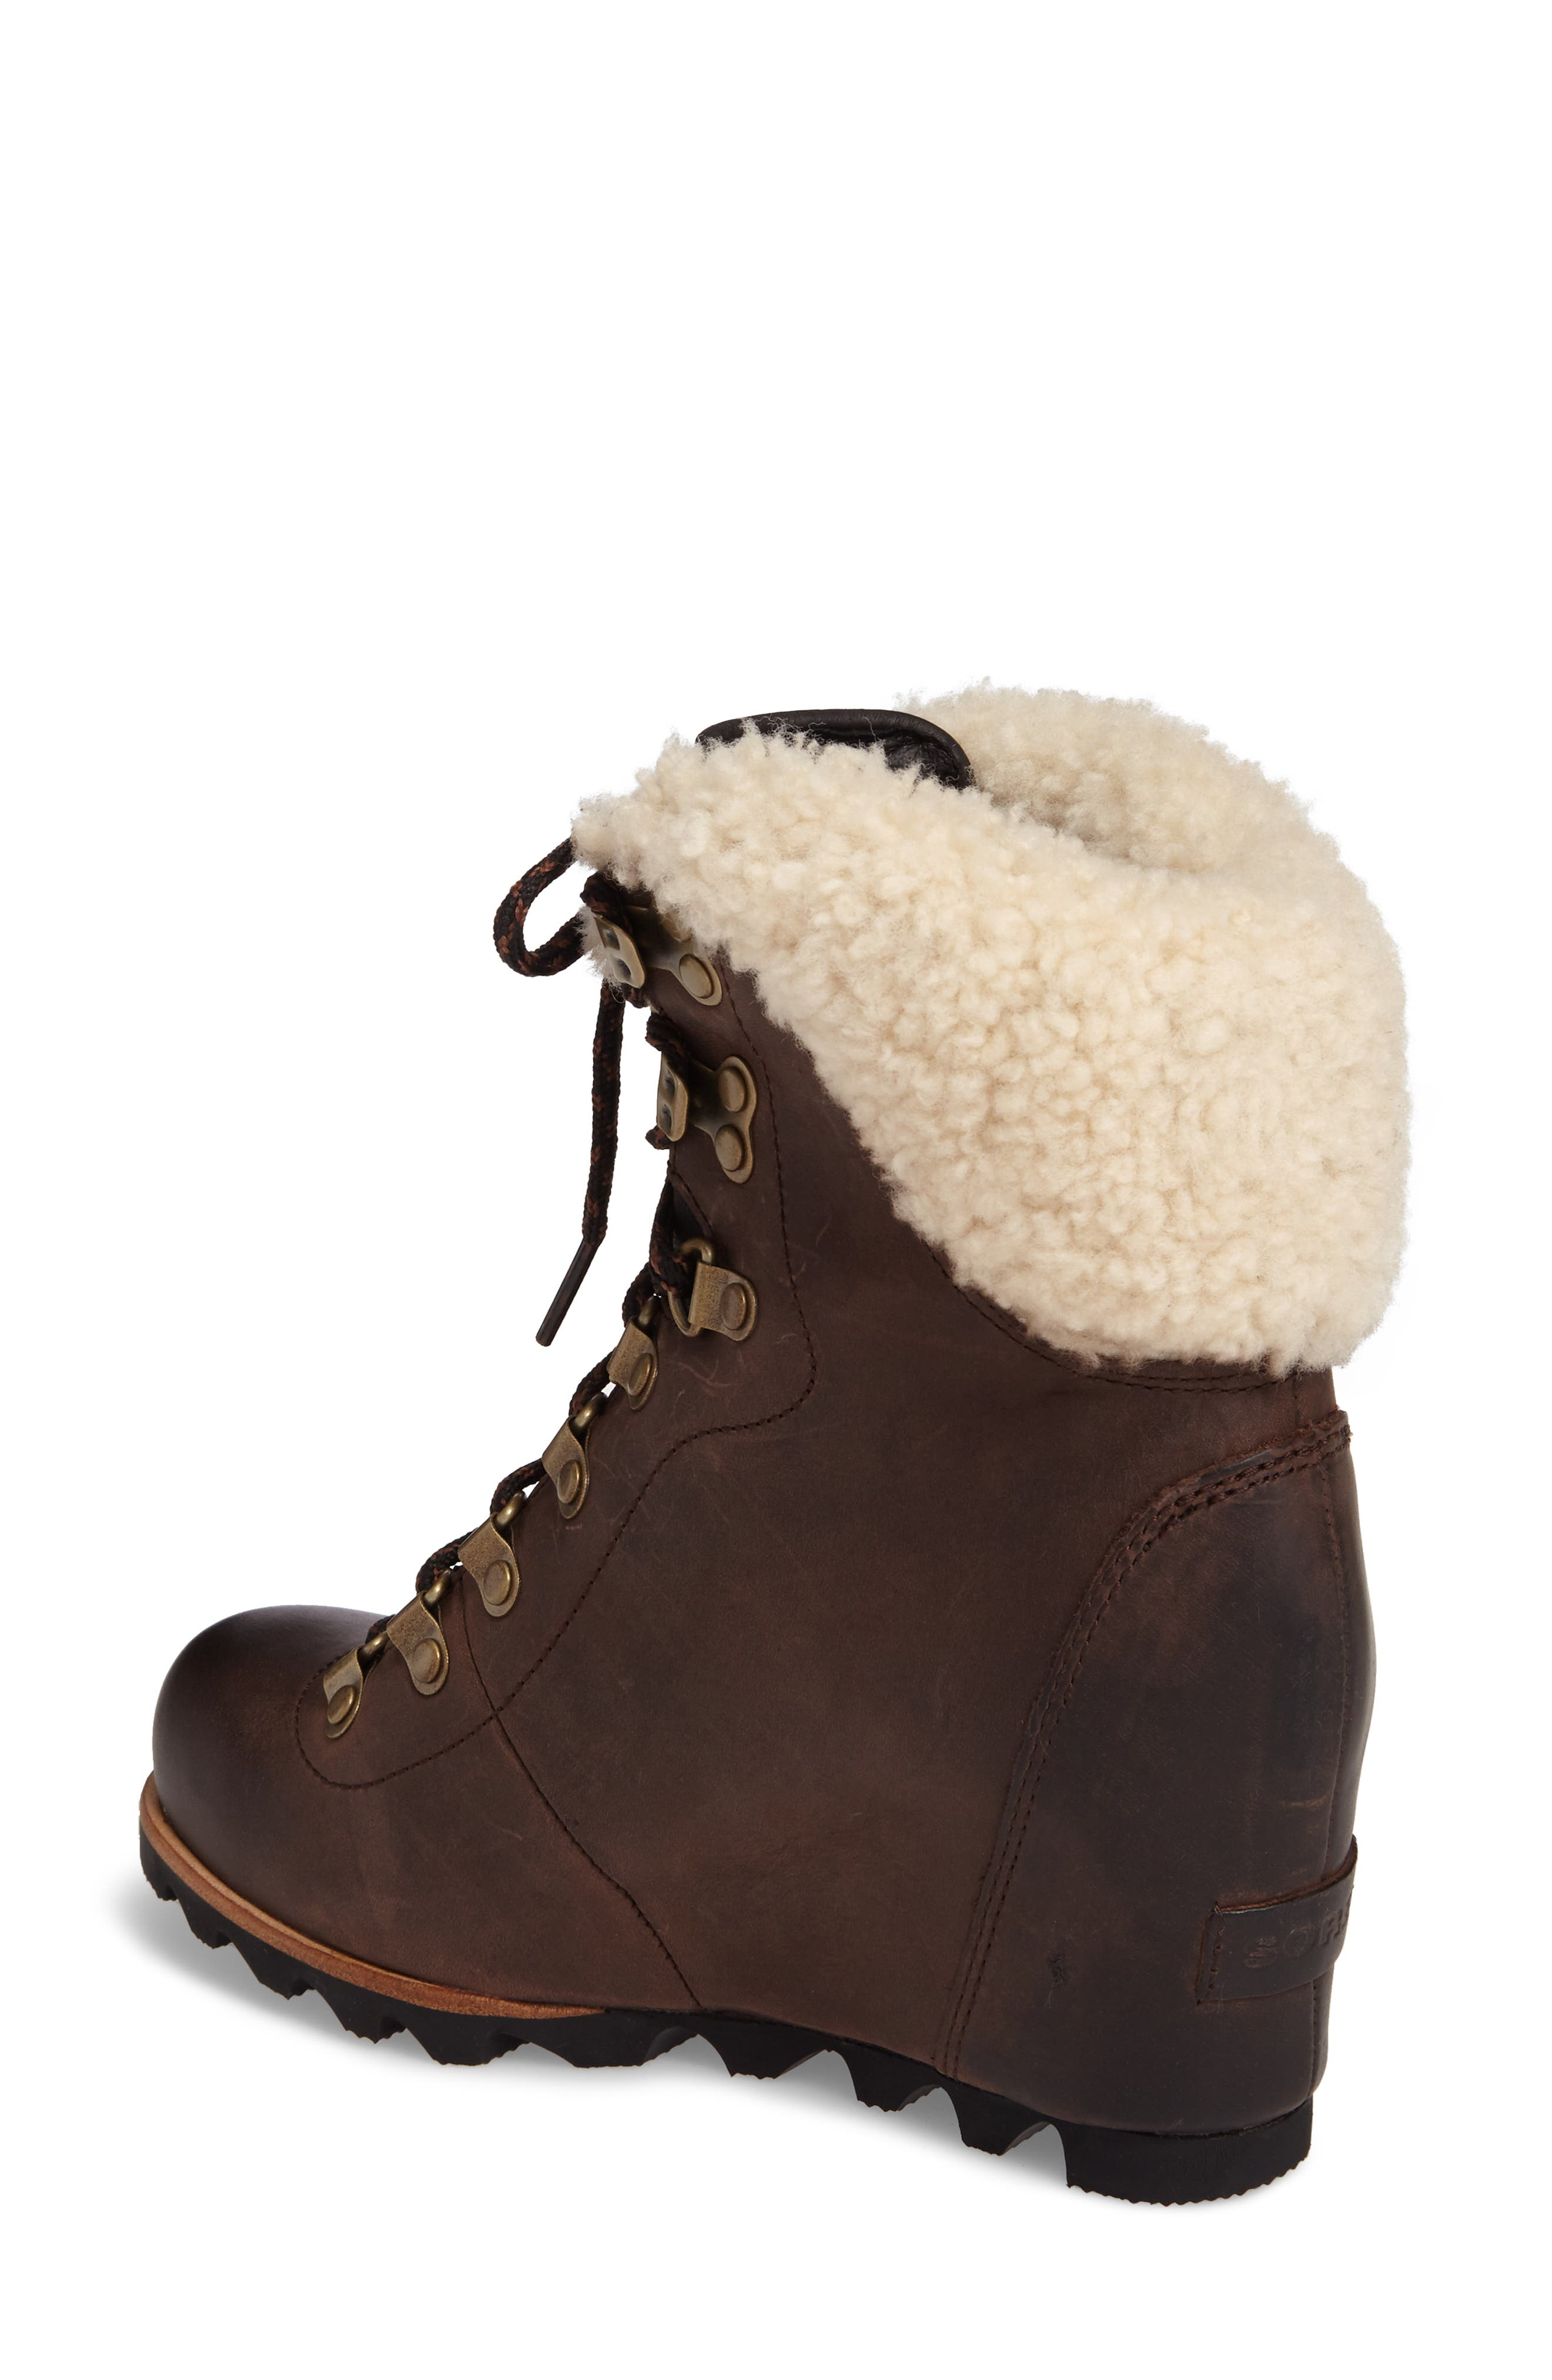 Conquest Genuine Shearling Cuff Waterproof Boot,                             Alternate thumbnail 2, color,                             200